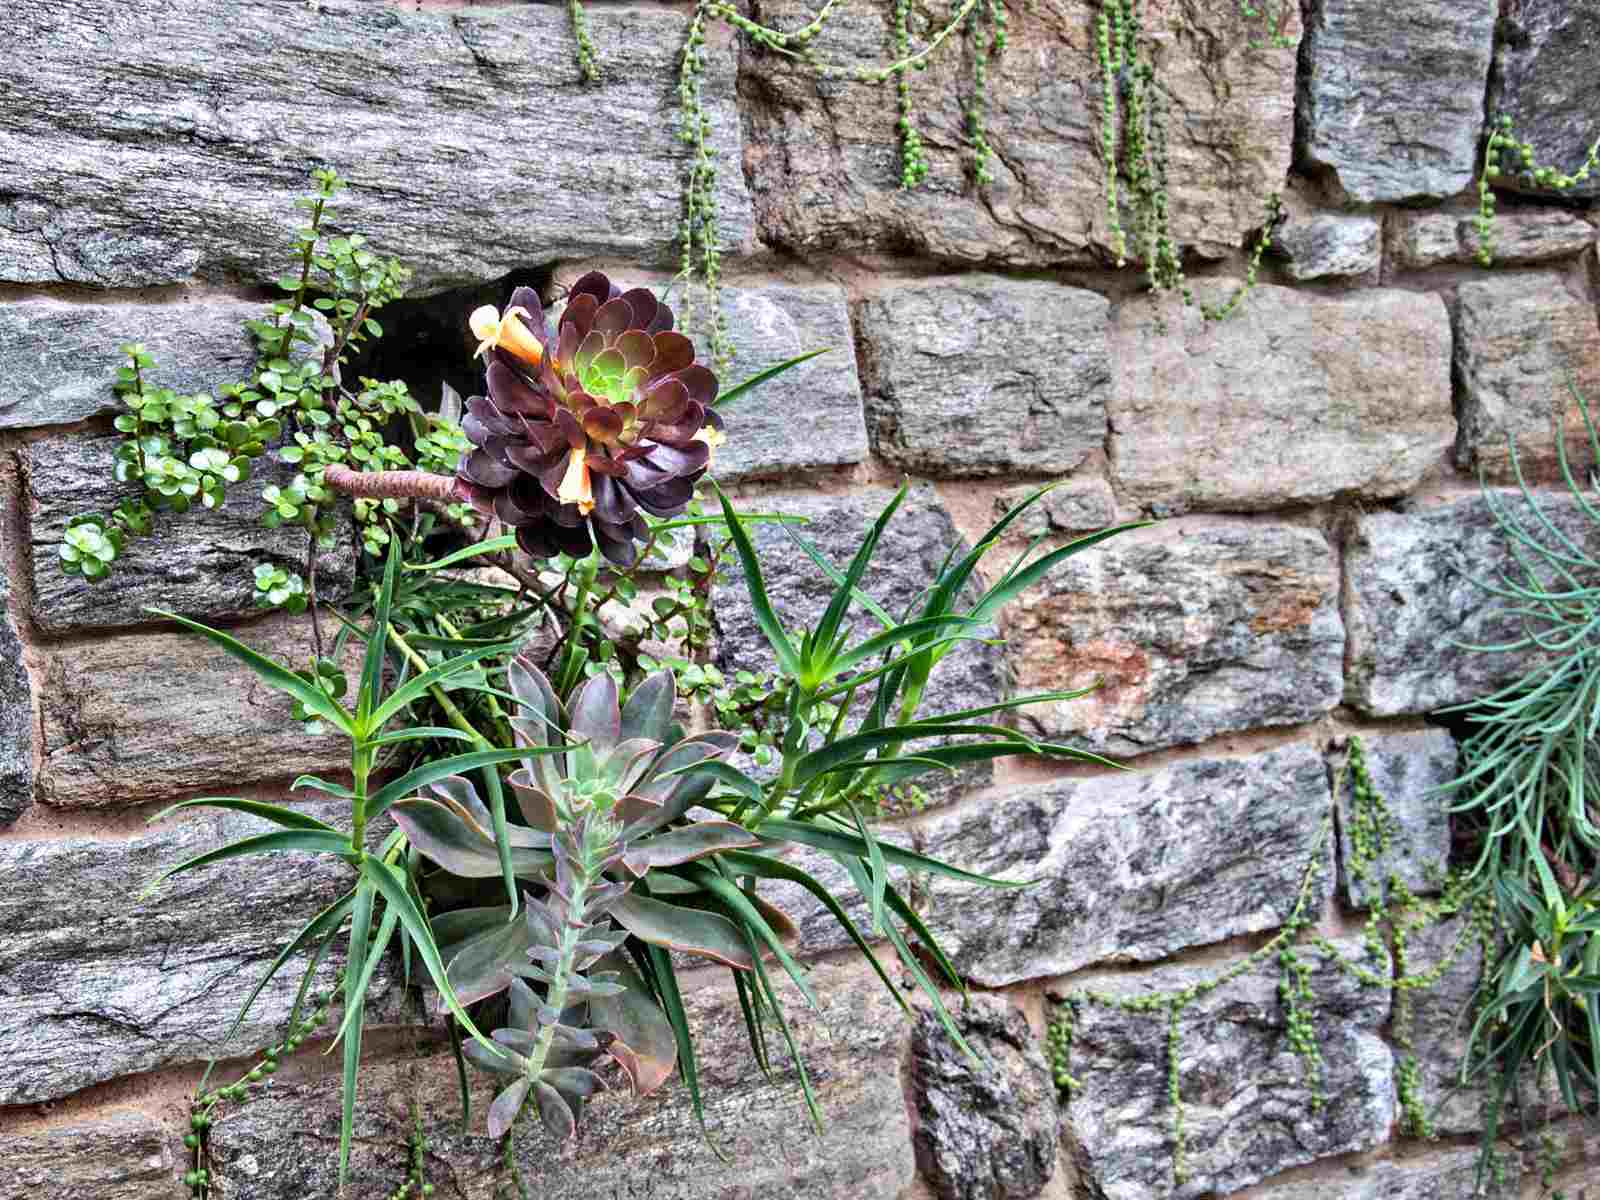 A rosette of aeonium growing out of a wall